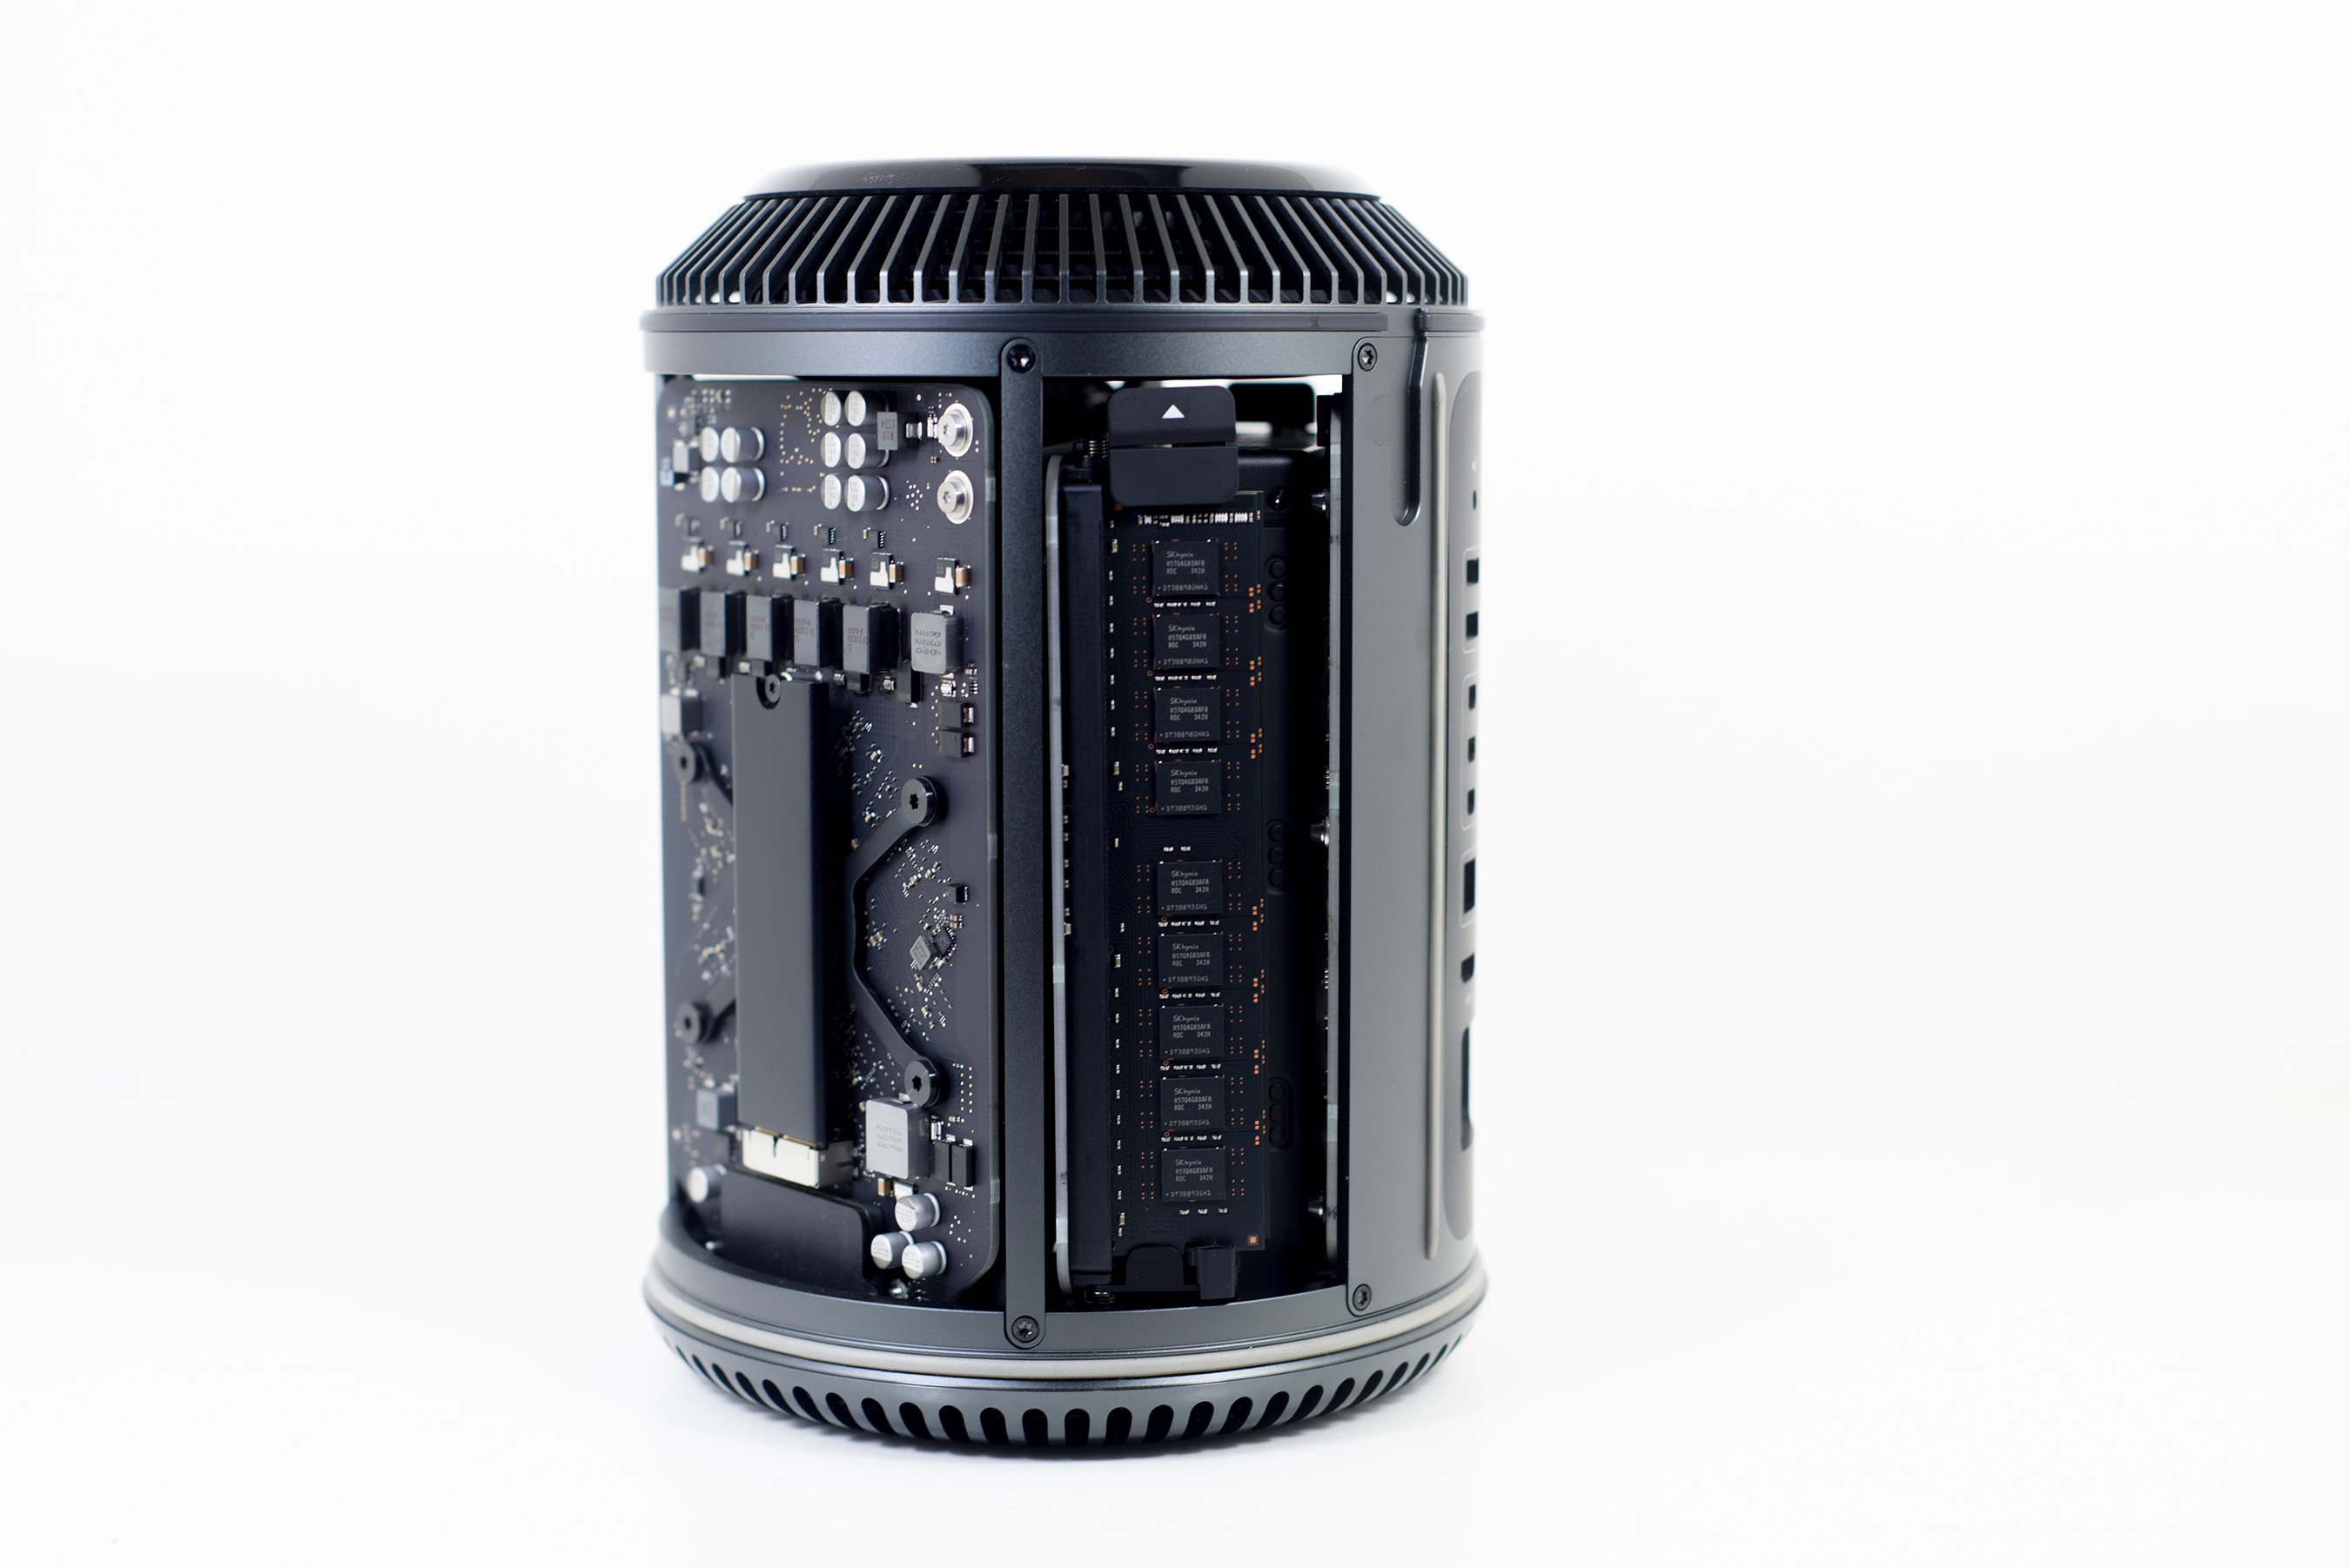 SSD, Dual Gigabit Ethernet & 802.11ac WiFi - The Mac Pro Review (Late 2013)